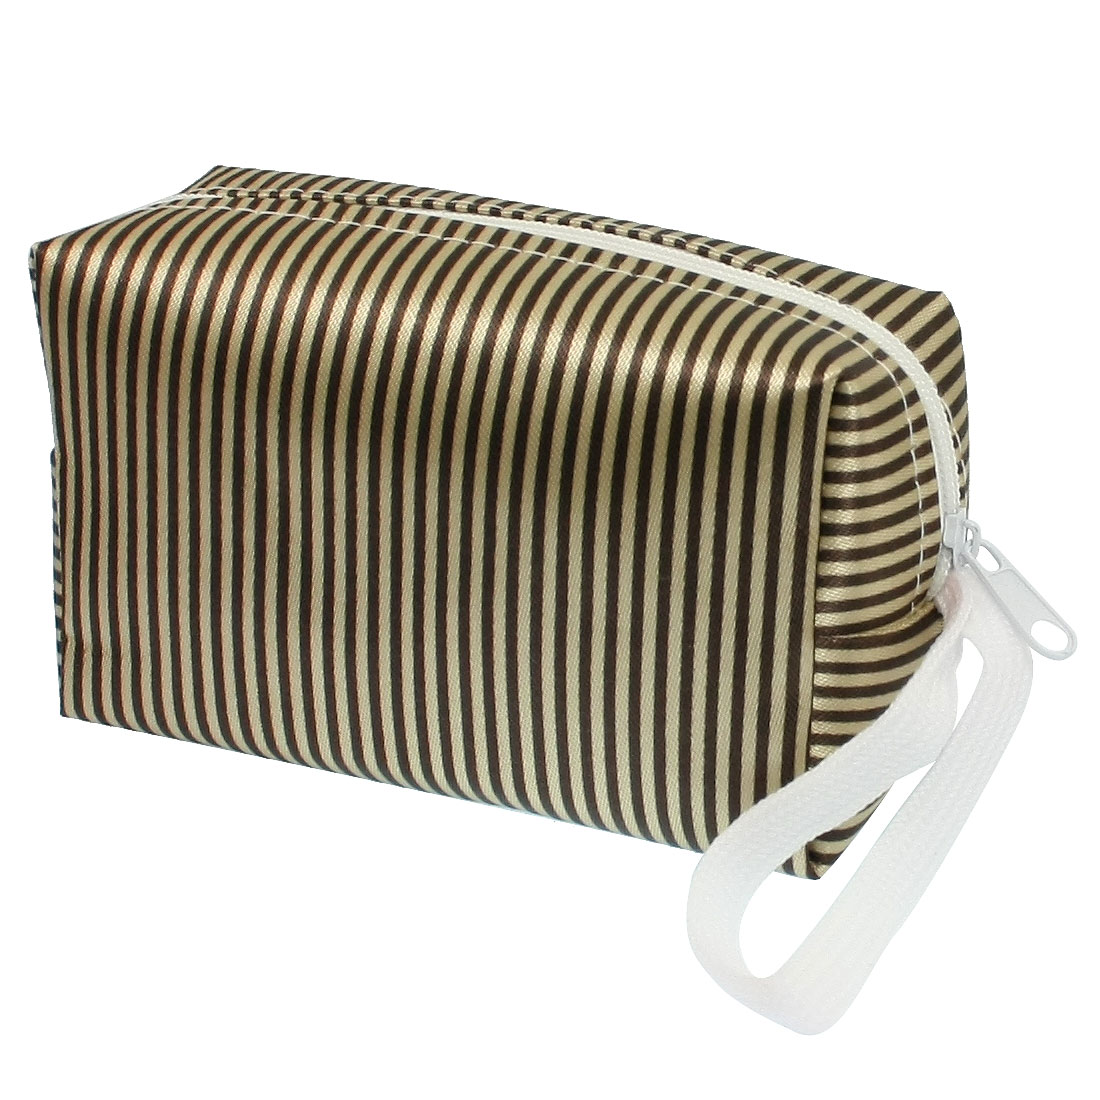 Beige Brown Stripes Pattern Zip Up Design Single Compartment Purse Wallet Pouch